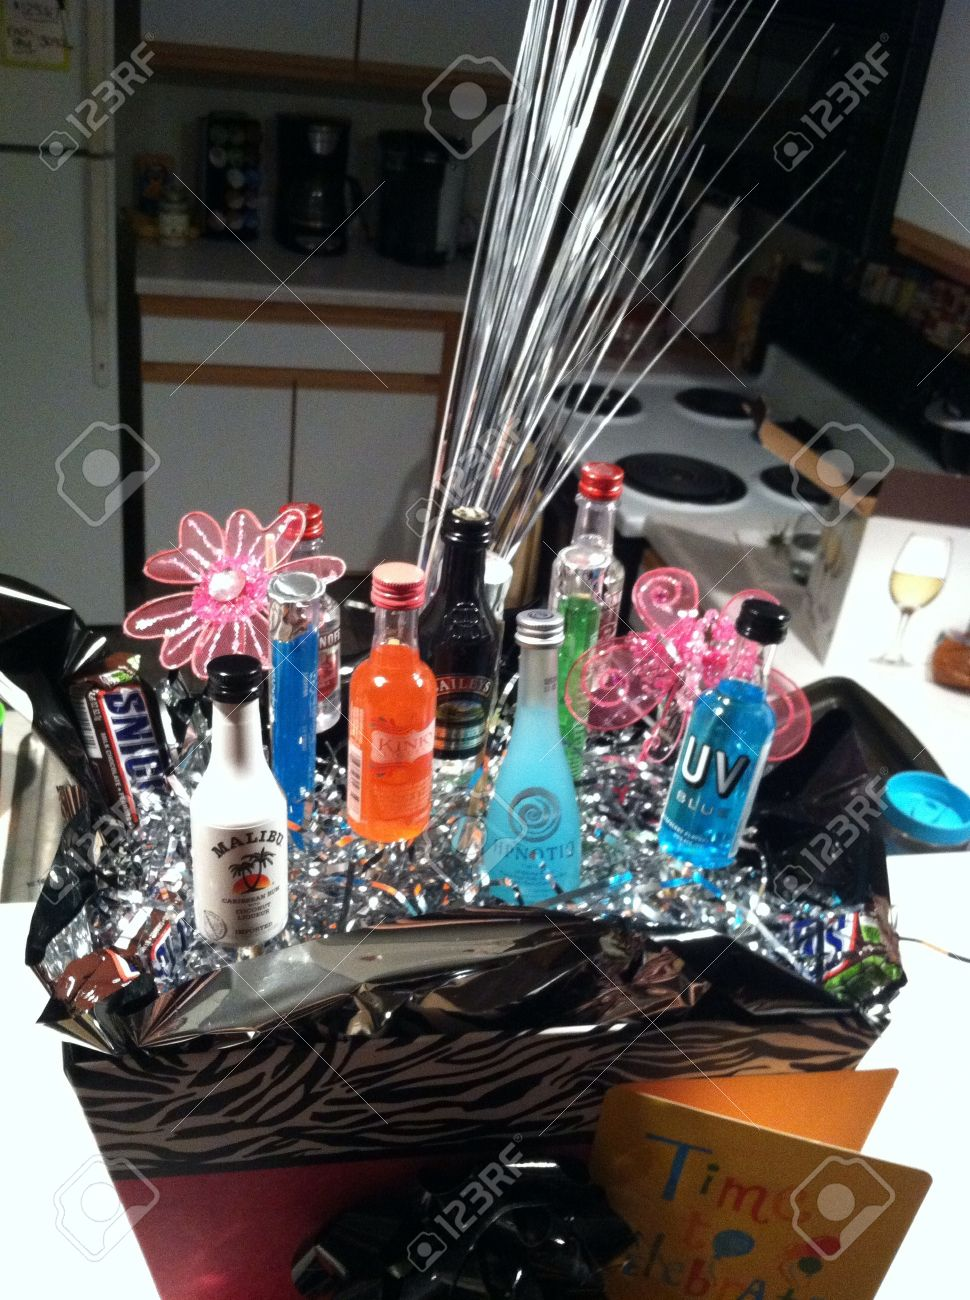 21st birthday gift basket with alcohol bottles. Stock Photo - 21832352